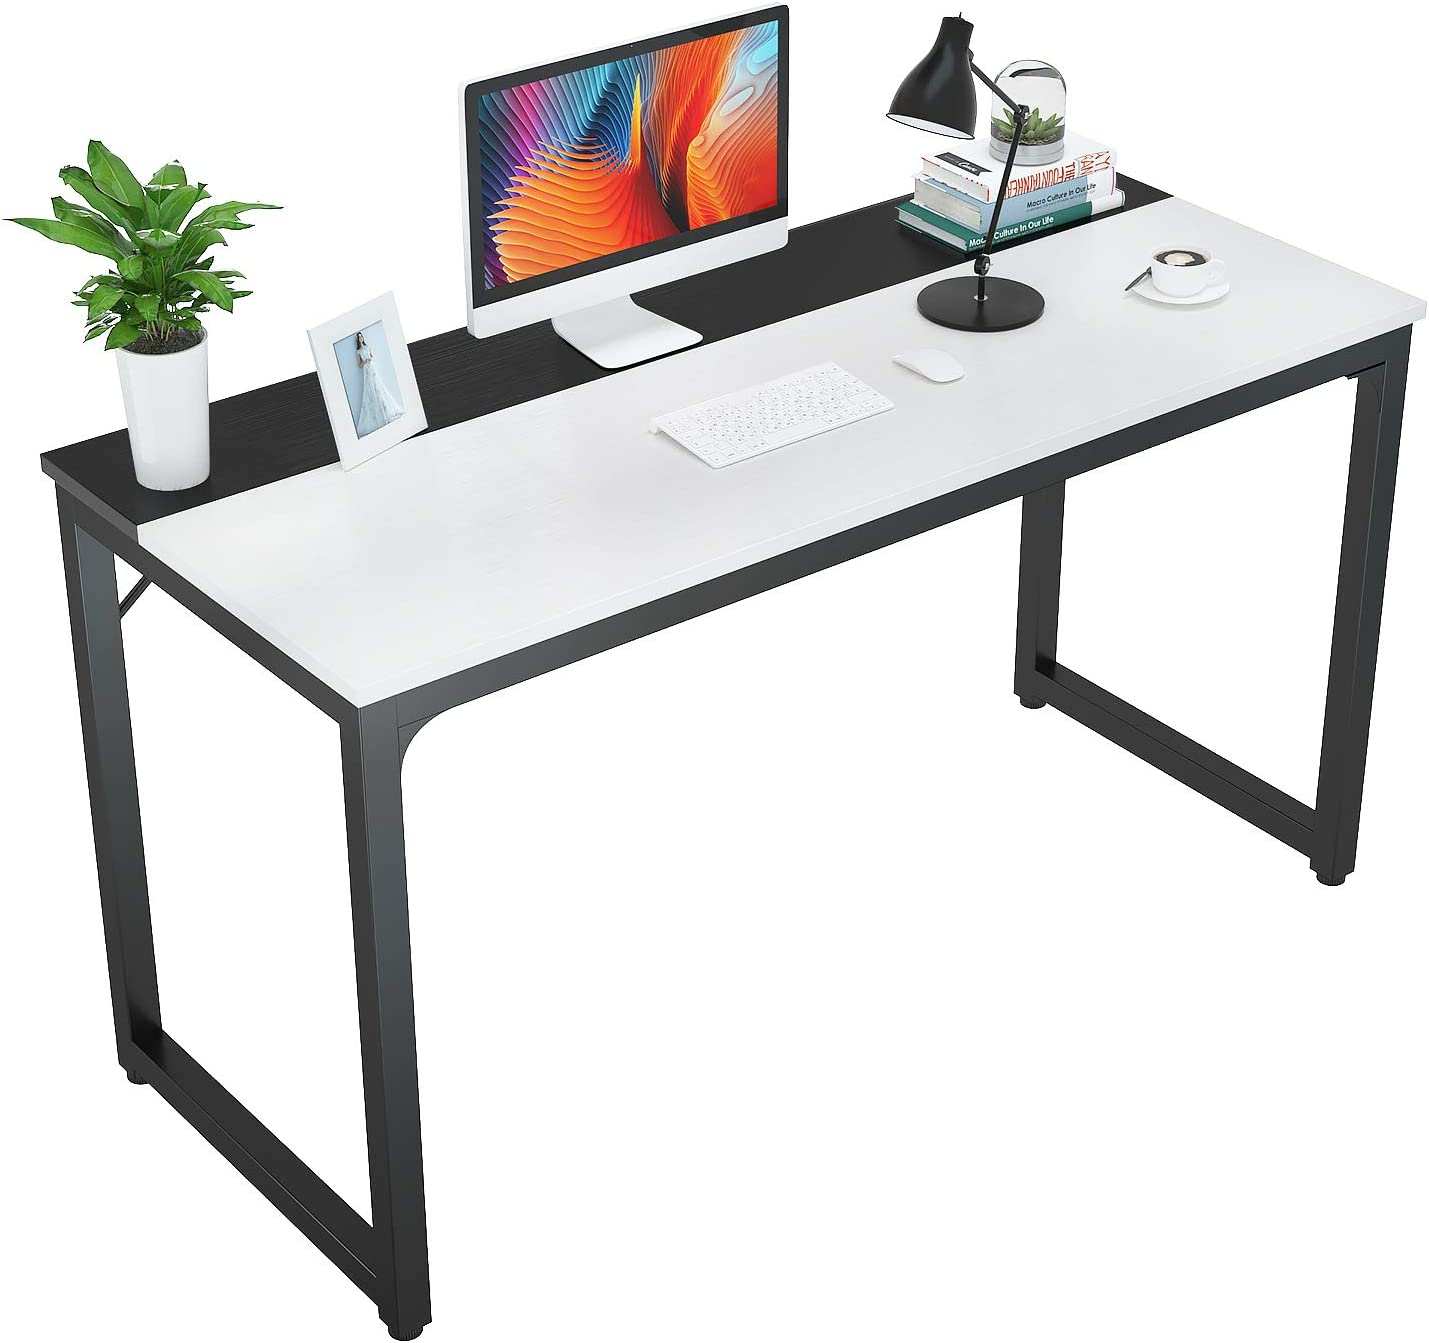 """Foxemart 47 Inch Computer Table Sturdy Office Desk, Modern PC Laptop 47"""" Writing Study Gaming Desk for Home Office Workstation, White and Black"""